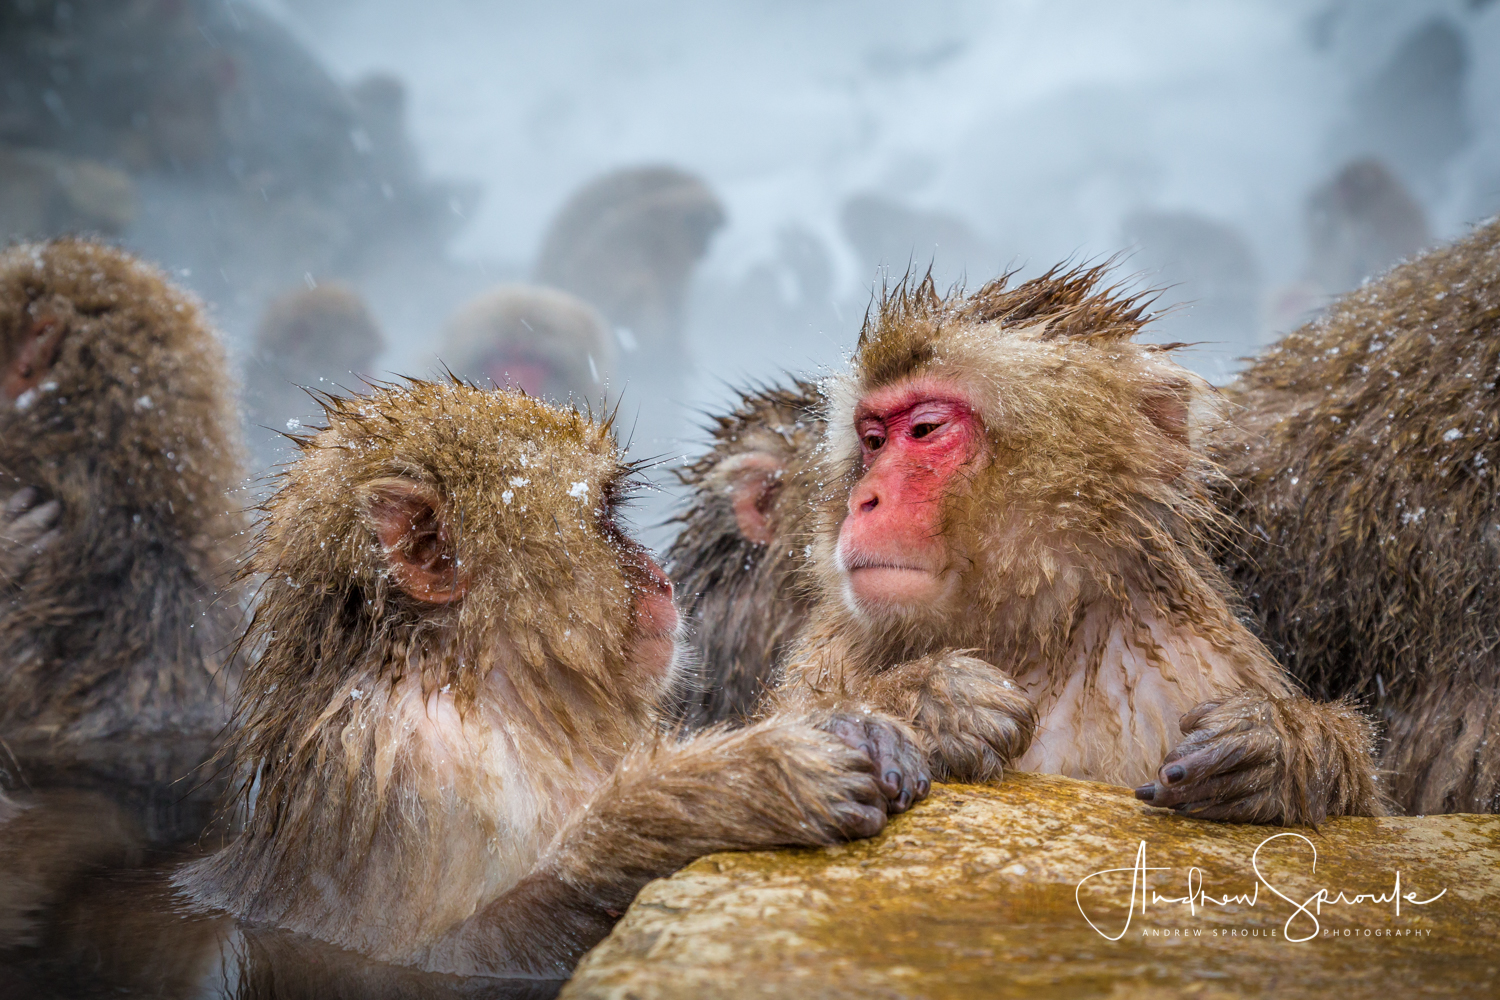 Japanese Macaques ( Macaca fuscata ), Snow Monkeys socialise in a thermal hot spring in Jigokudani, Japan